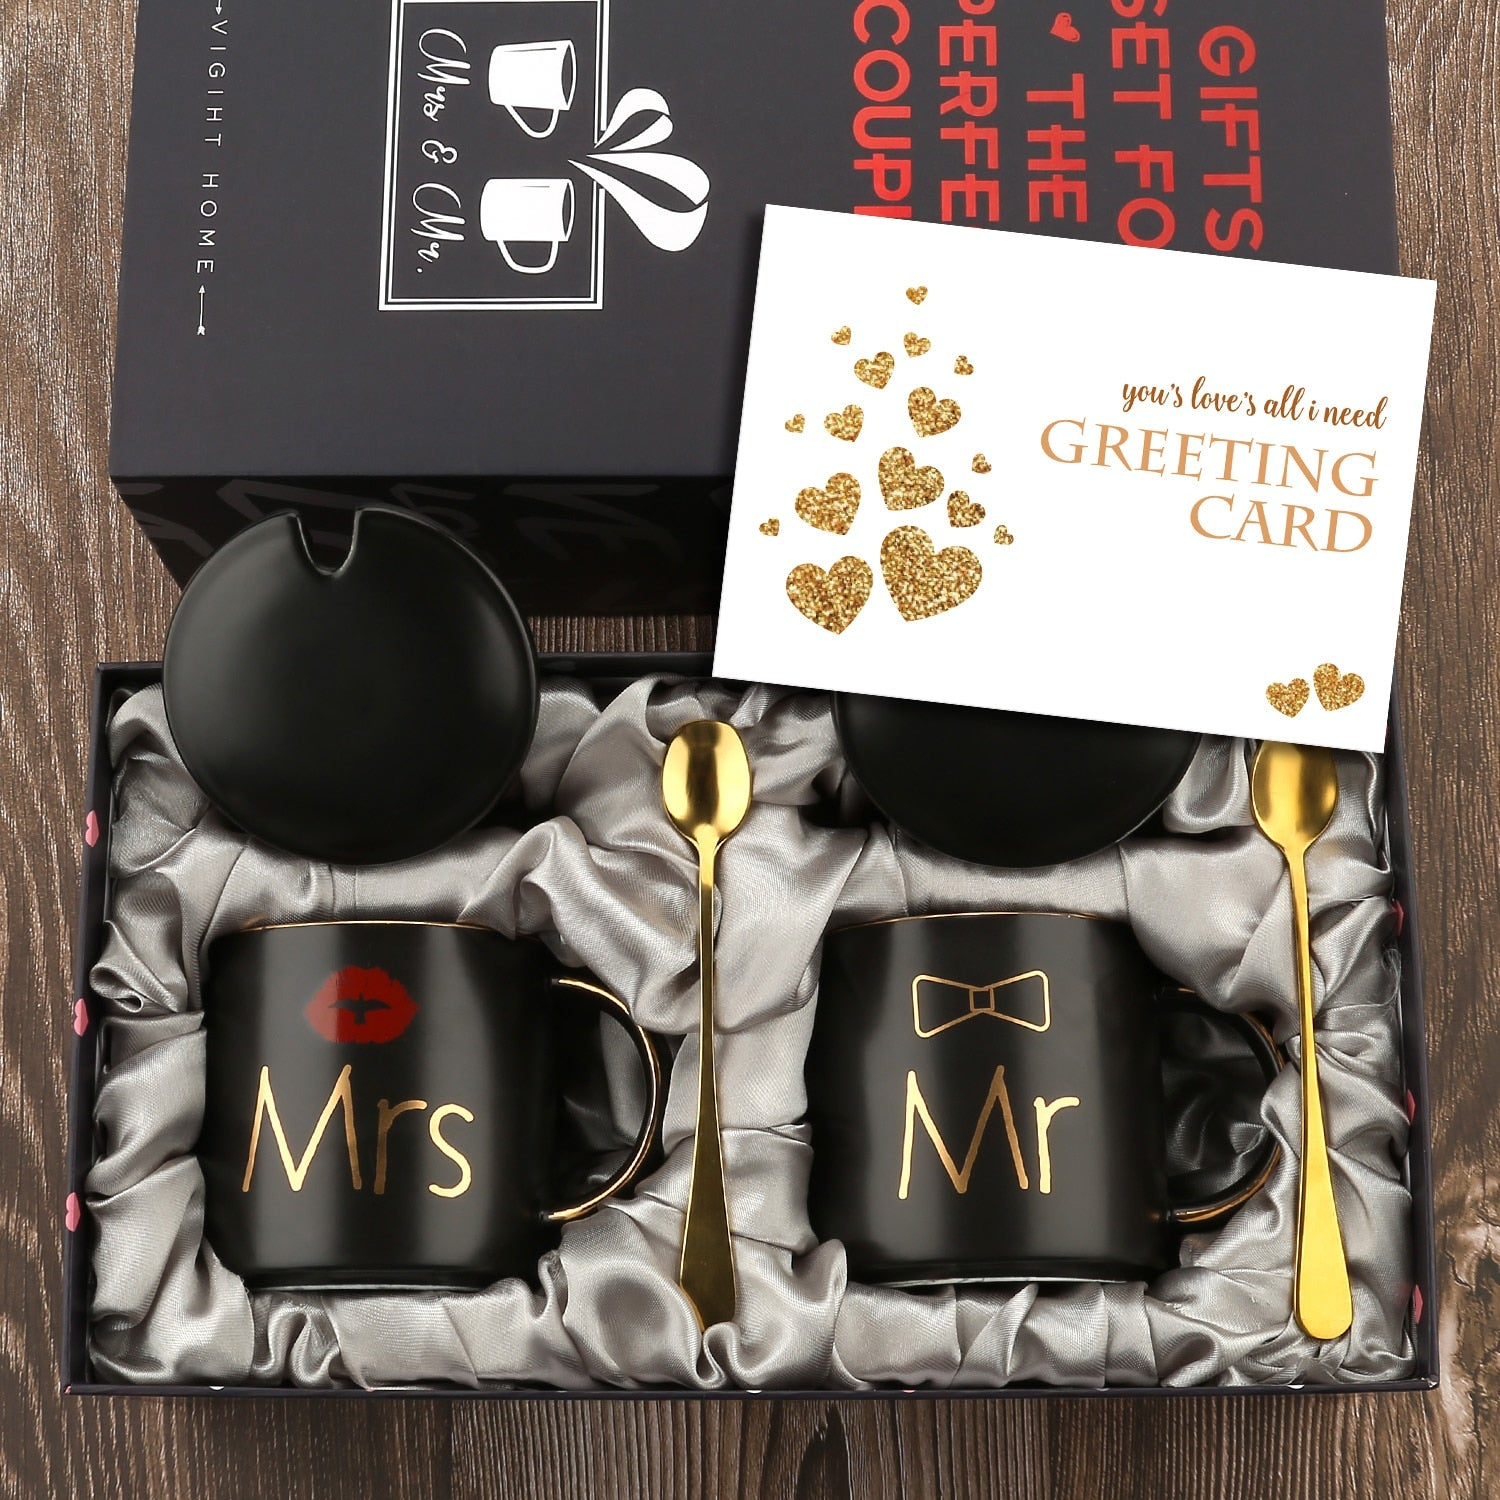 Mr. and Mrs. Coffee Mugs Cups Gift